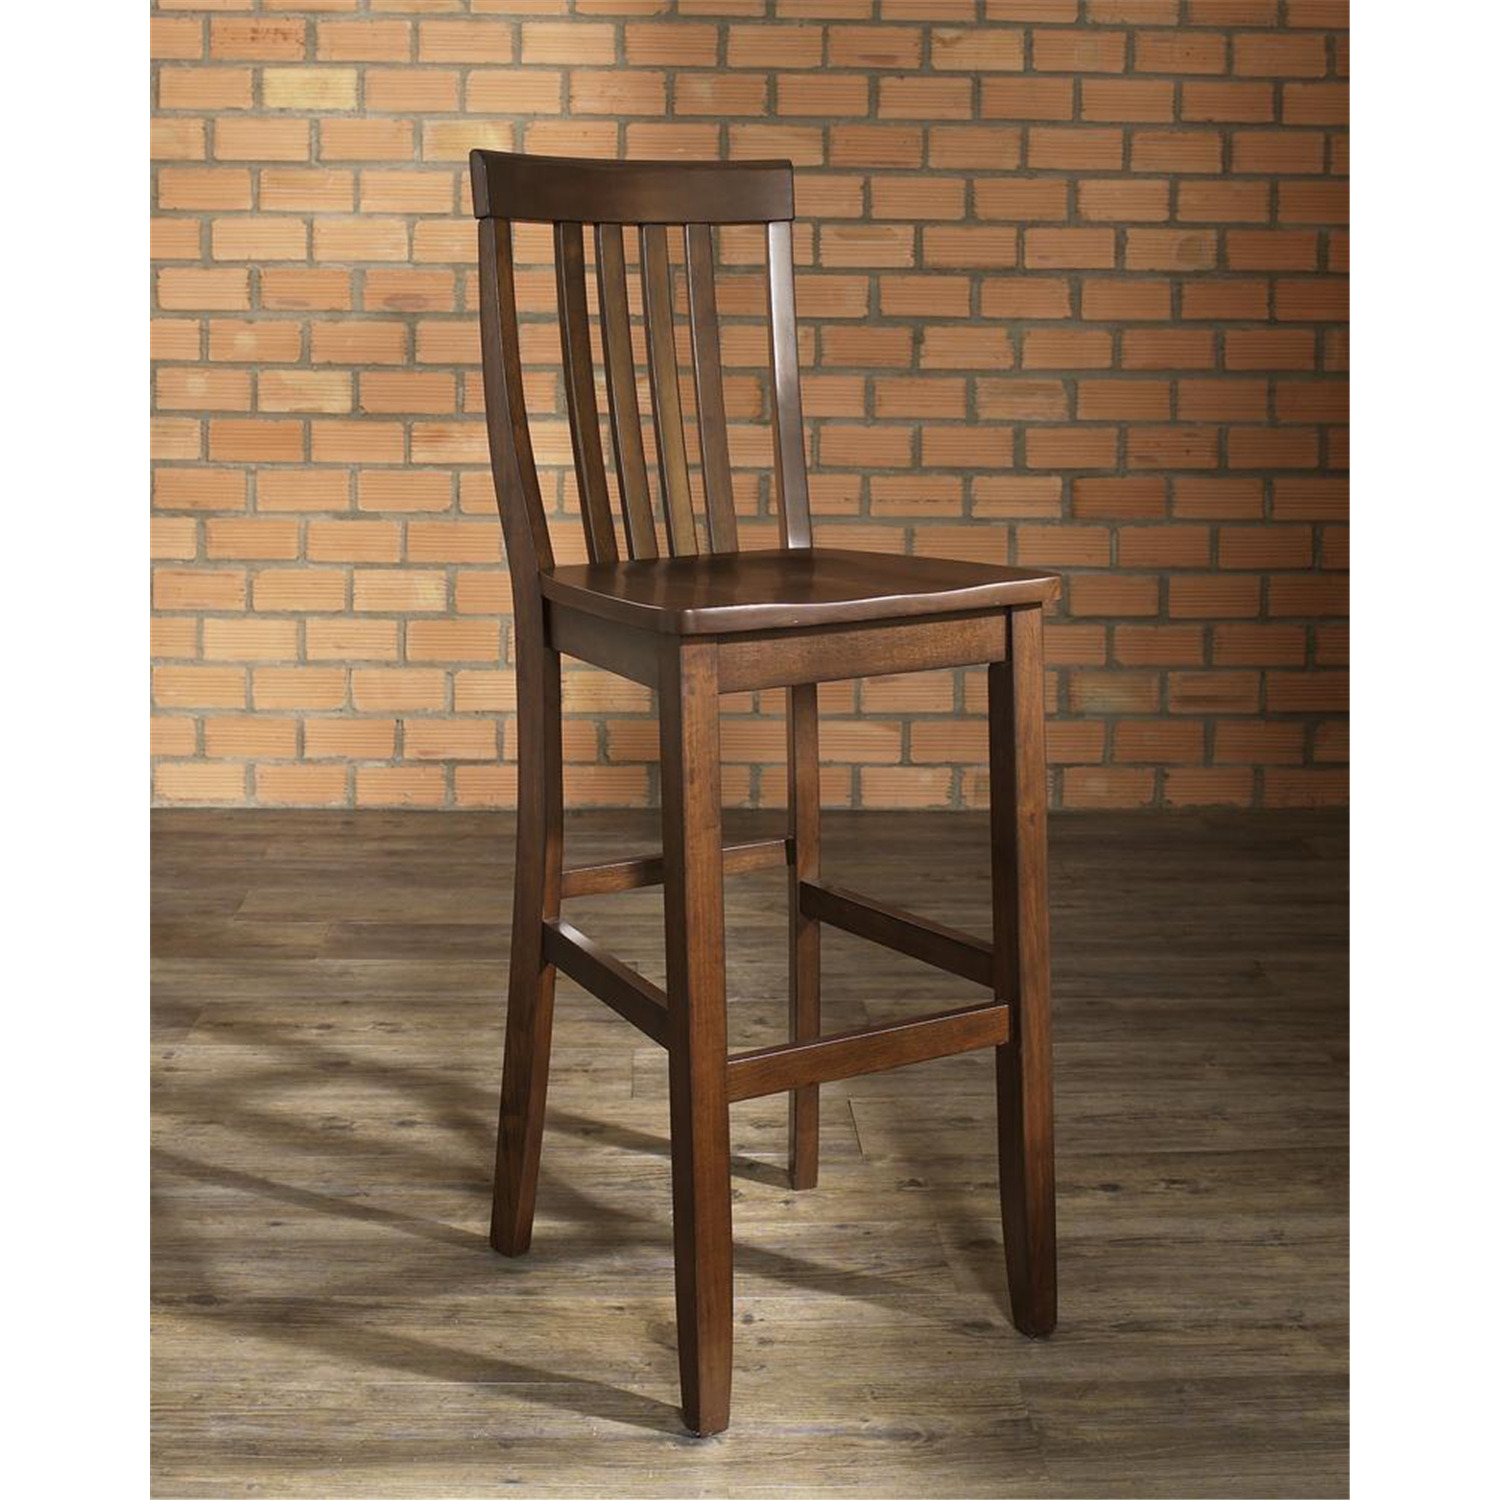 Crosley School House Bar Stool with 30 Inch Seat Height  : i232880 from ojcommerce.com size 800 x 1000 jpeg 113kB